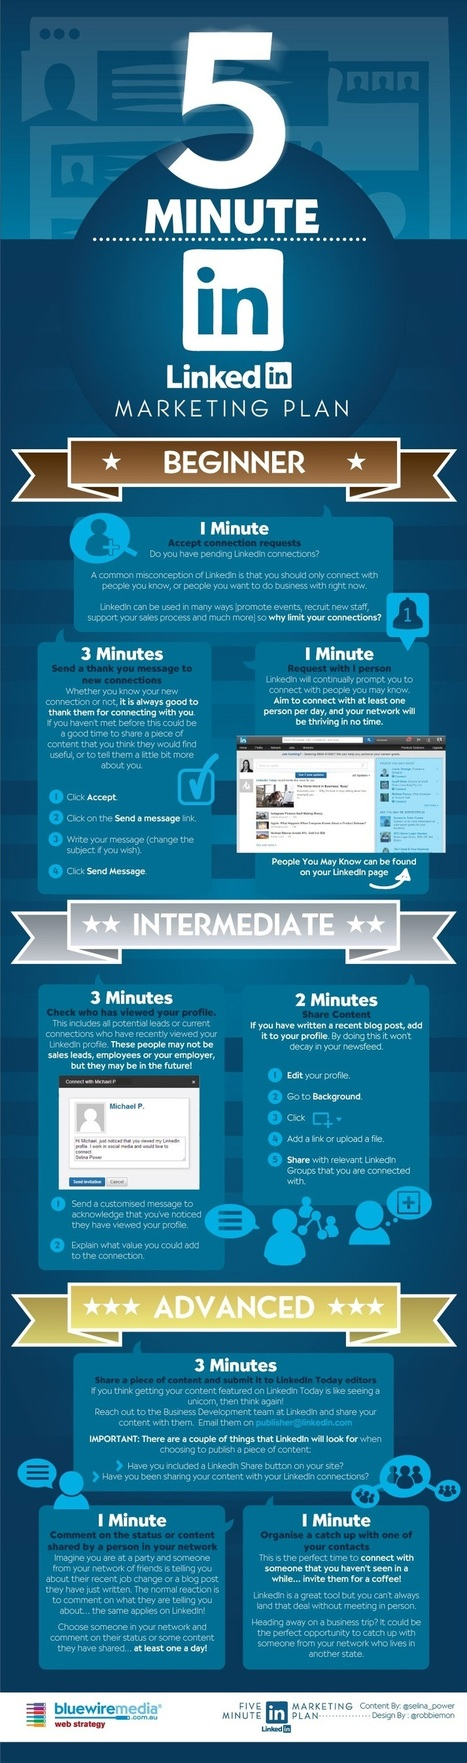 5 Minute LinkedIn Marketing Plan {Infographic} | Better know and better use Social Media today (facebook, twitter...) | Scoop.it